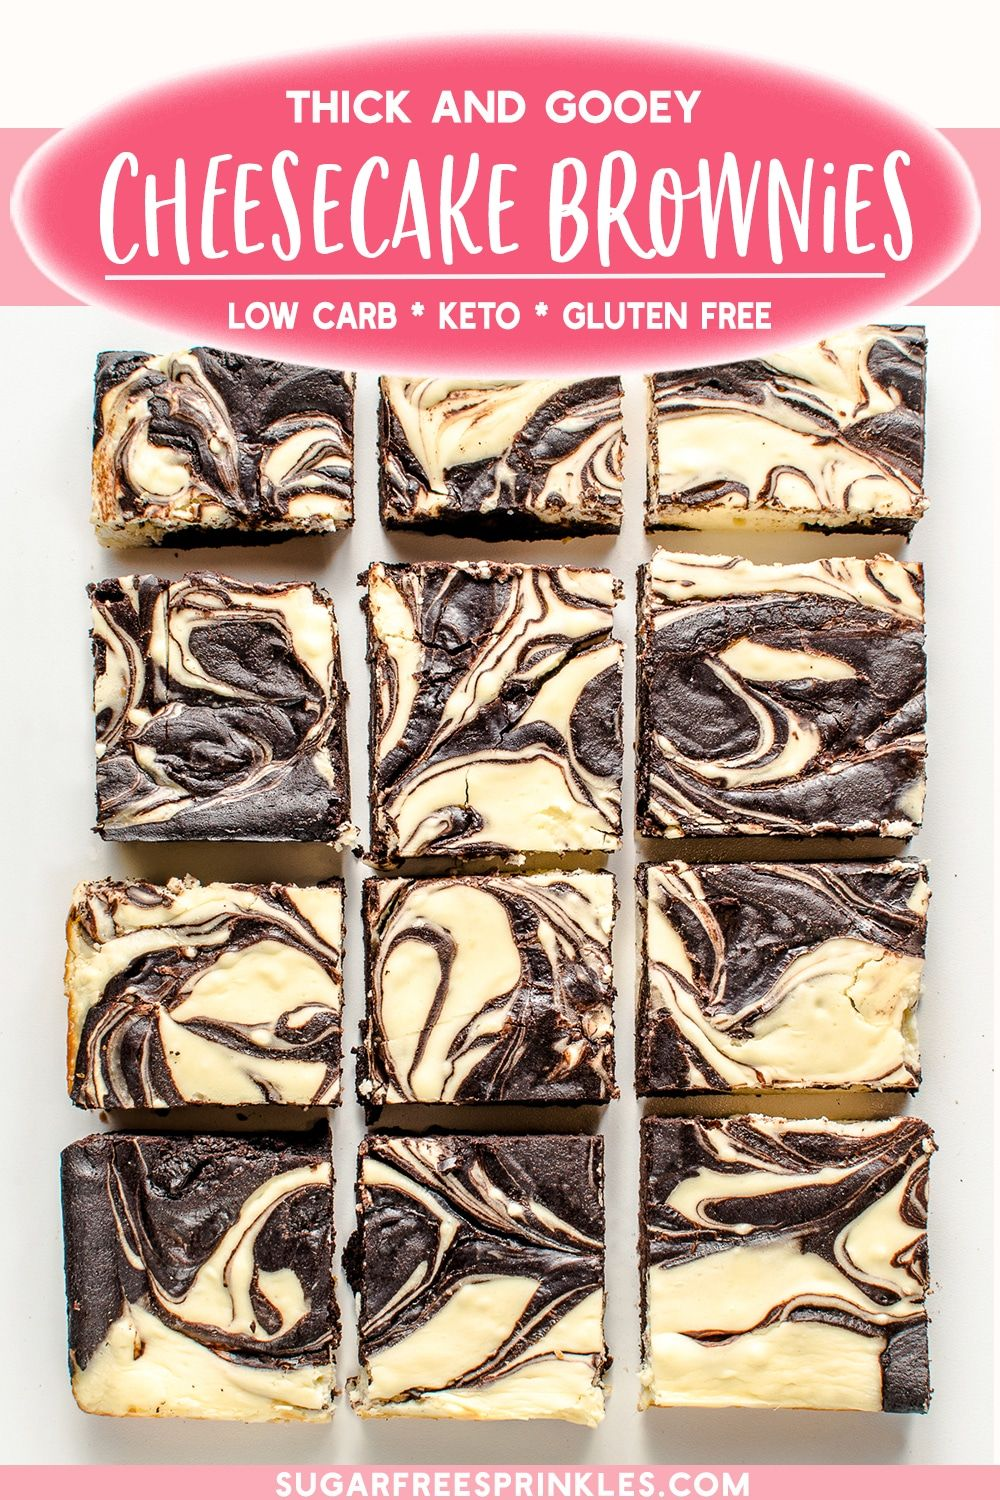 Gooey Keto Cheesecake Brownies (Low Carb & Gluten Free)